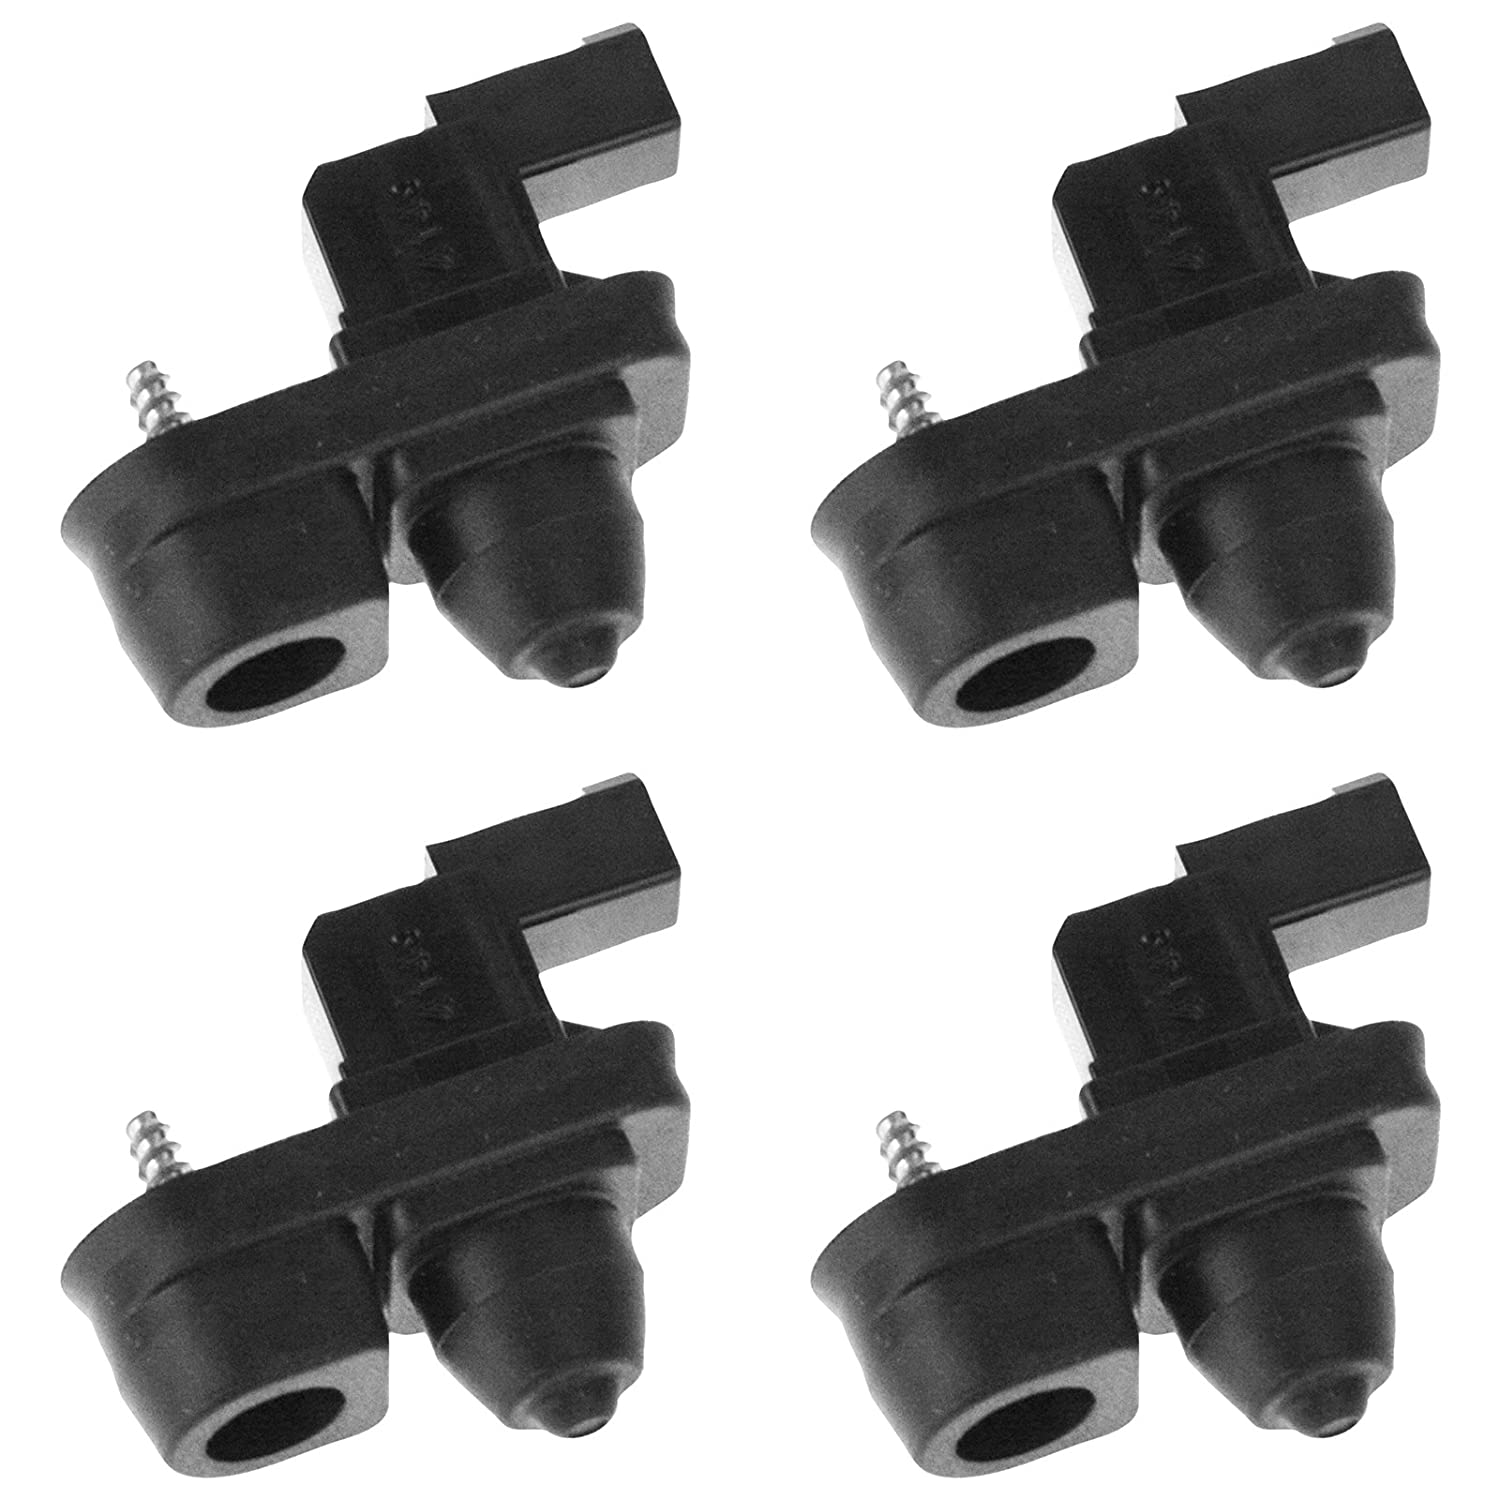 AC Delco 15905665 Door Jamb Switch Set of 4 LF LR RF RR for Chevy GMC Hummer